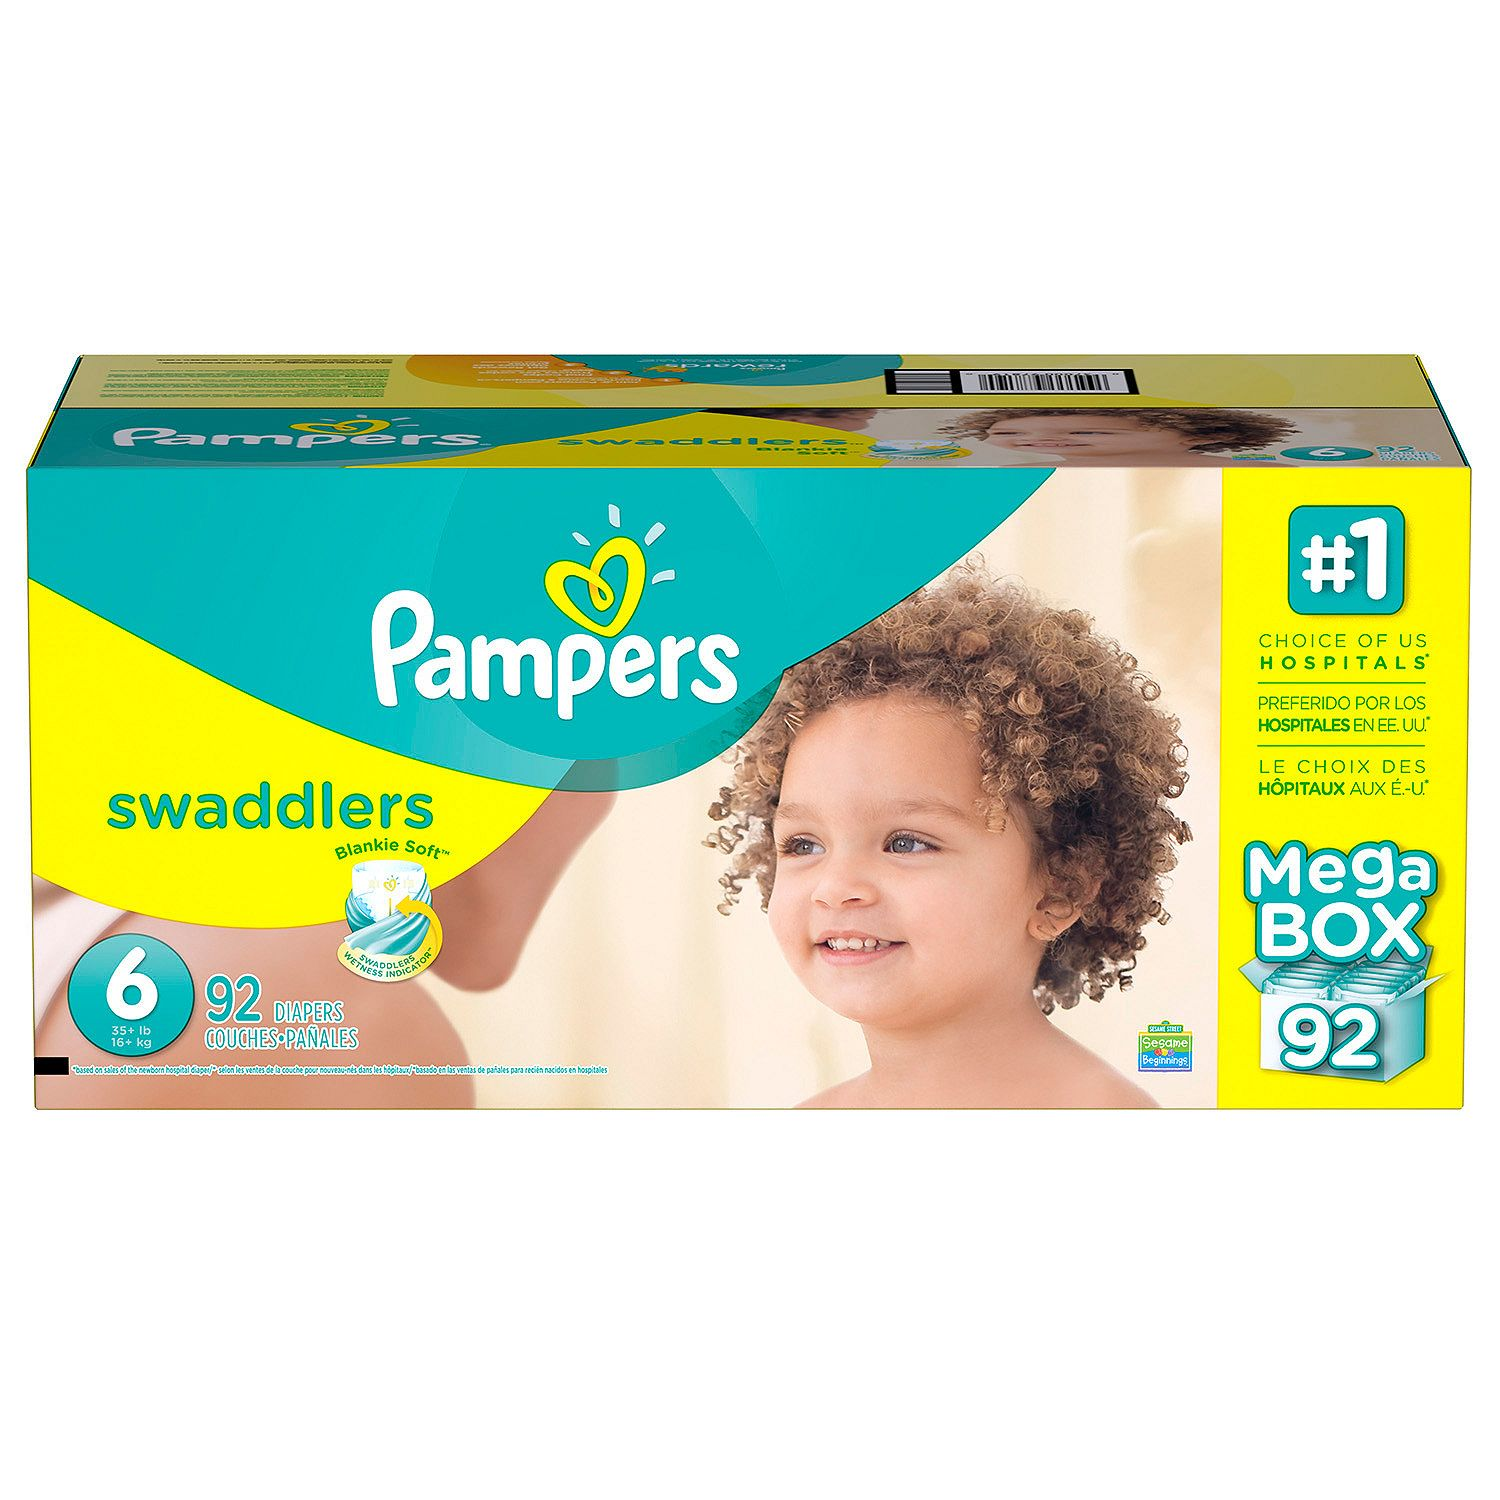 Pampers' Swaddlers Diapers Size 6 - 92 ct. ( Weight 35+ lb.) - Bulk Qty, Free Shipping - Comfortable, Soft, No leaking & Good nite Diapers